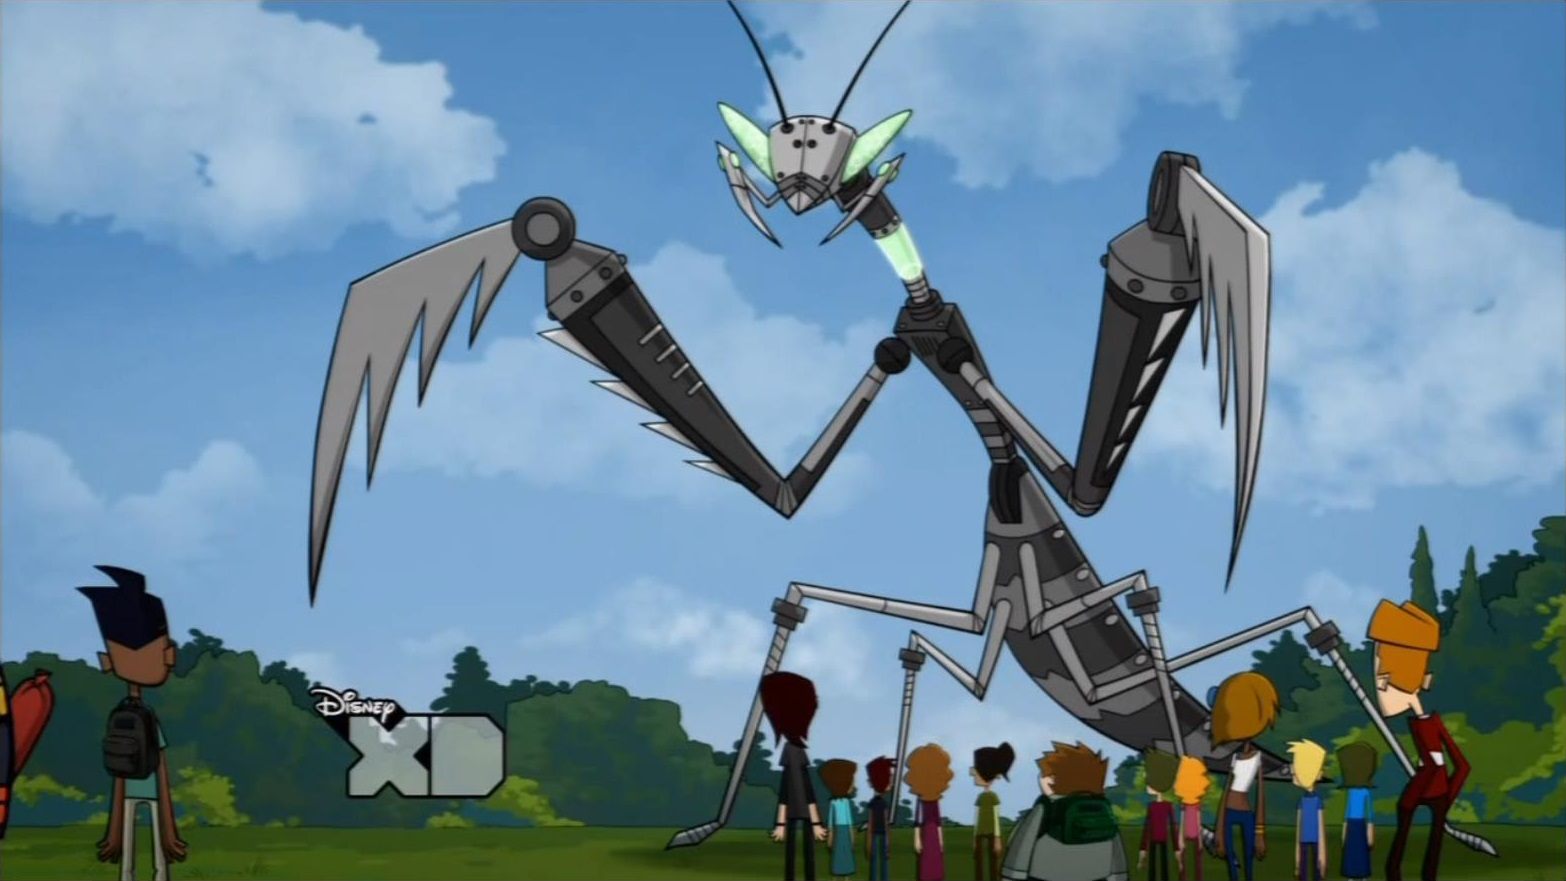 Giant Mantis Monster The Robo-mantis is a Giant